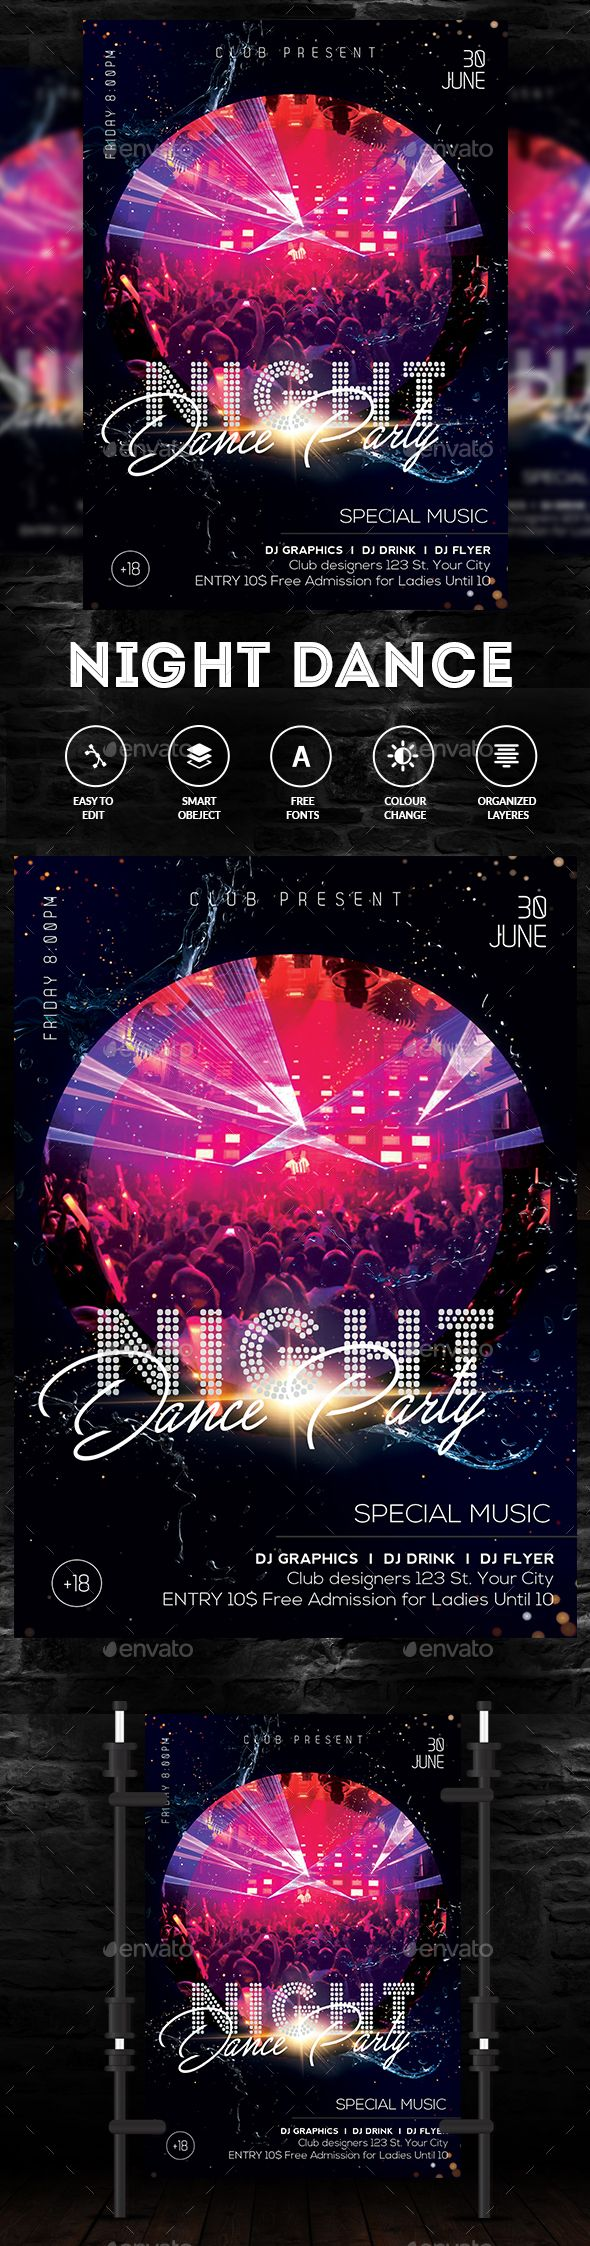 party nights dance flyer pinterest flyer template dancing and